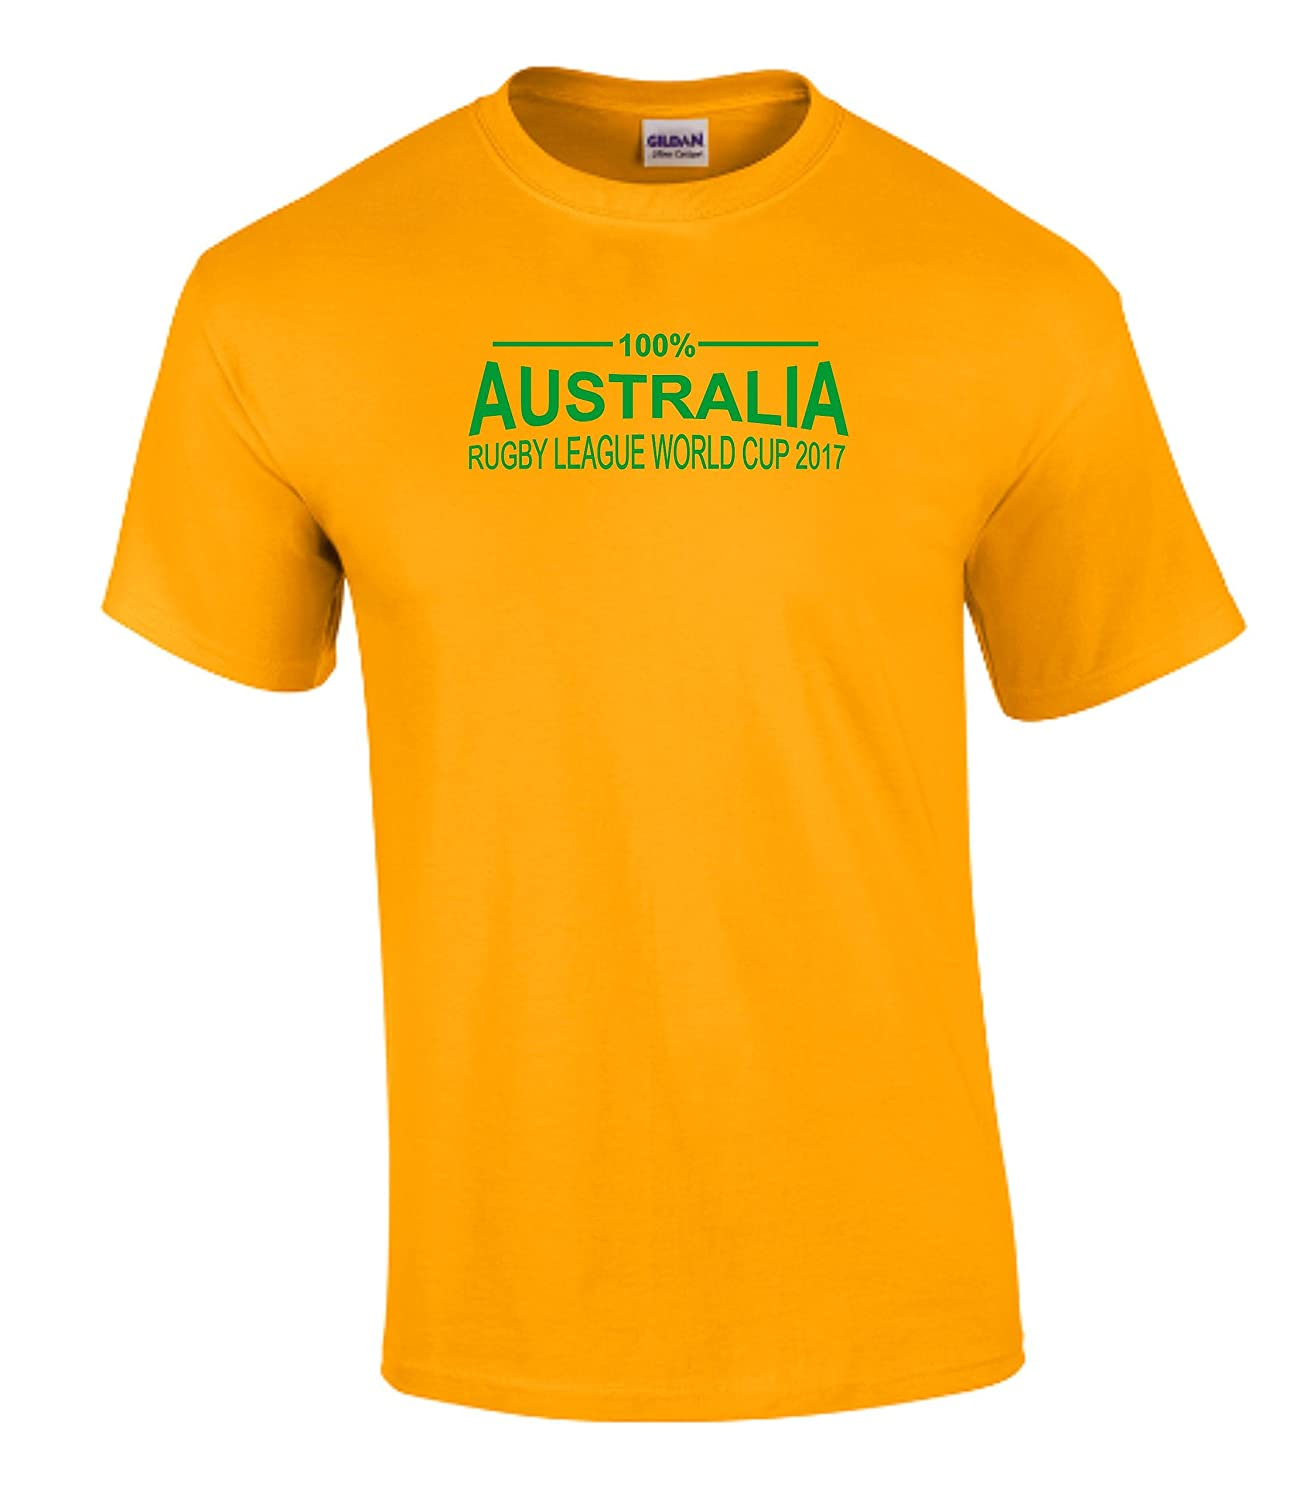 100% Australia Rugby League World Cup 2017 T-Shirt Mens Yellow